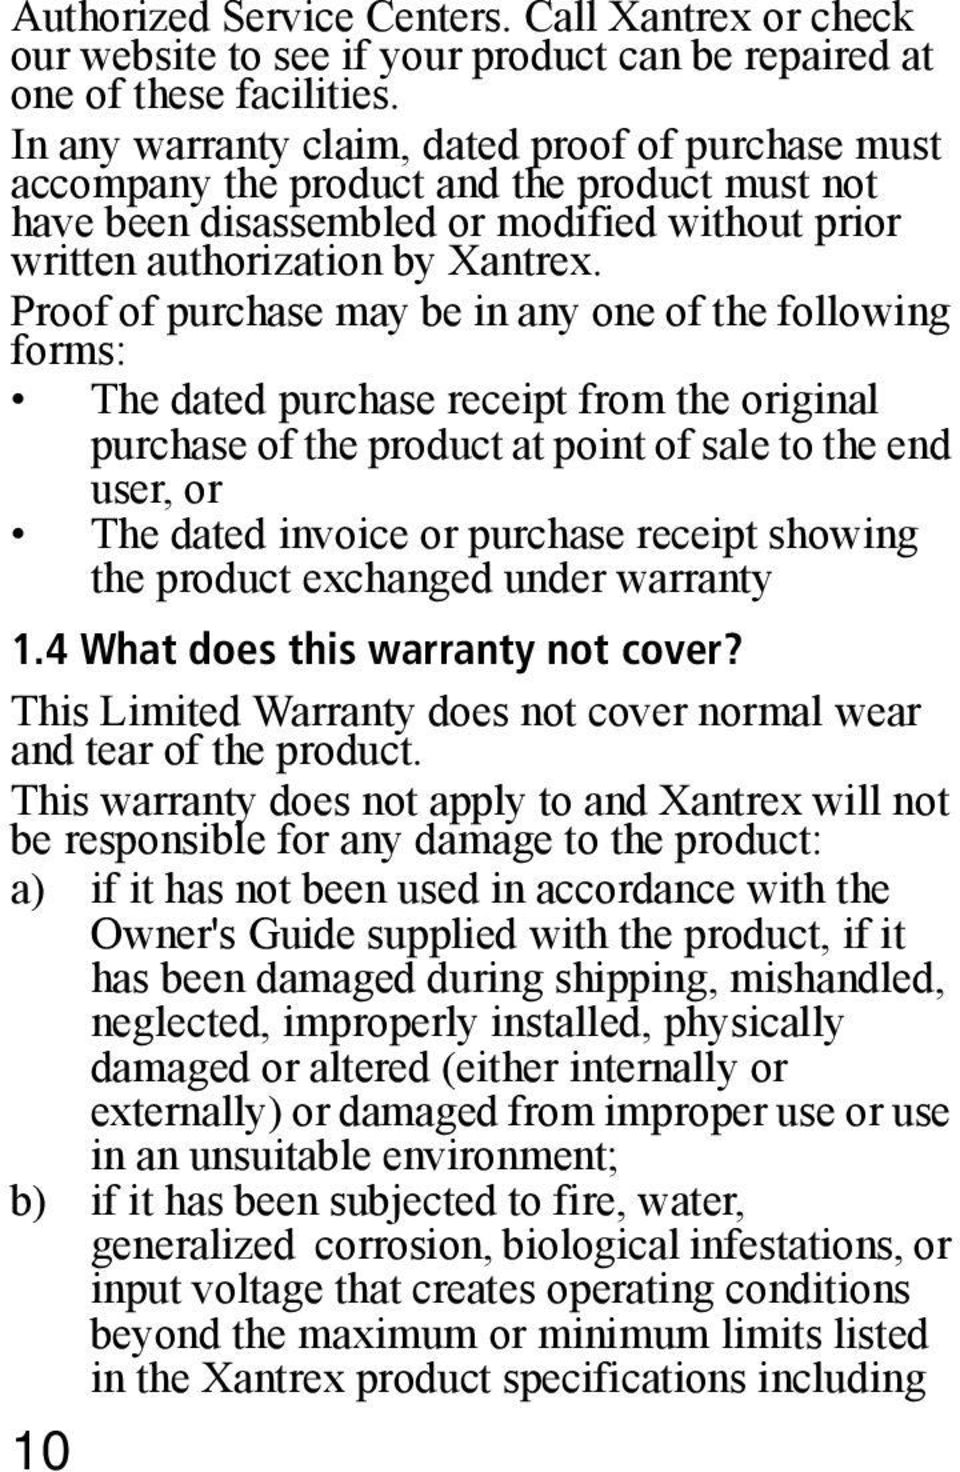 Proof of purchase may be in any one of the following forms: The dated purchase receipt from the original purchase of the product at point of sale to the end user, or The dated invoice or purchase